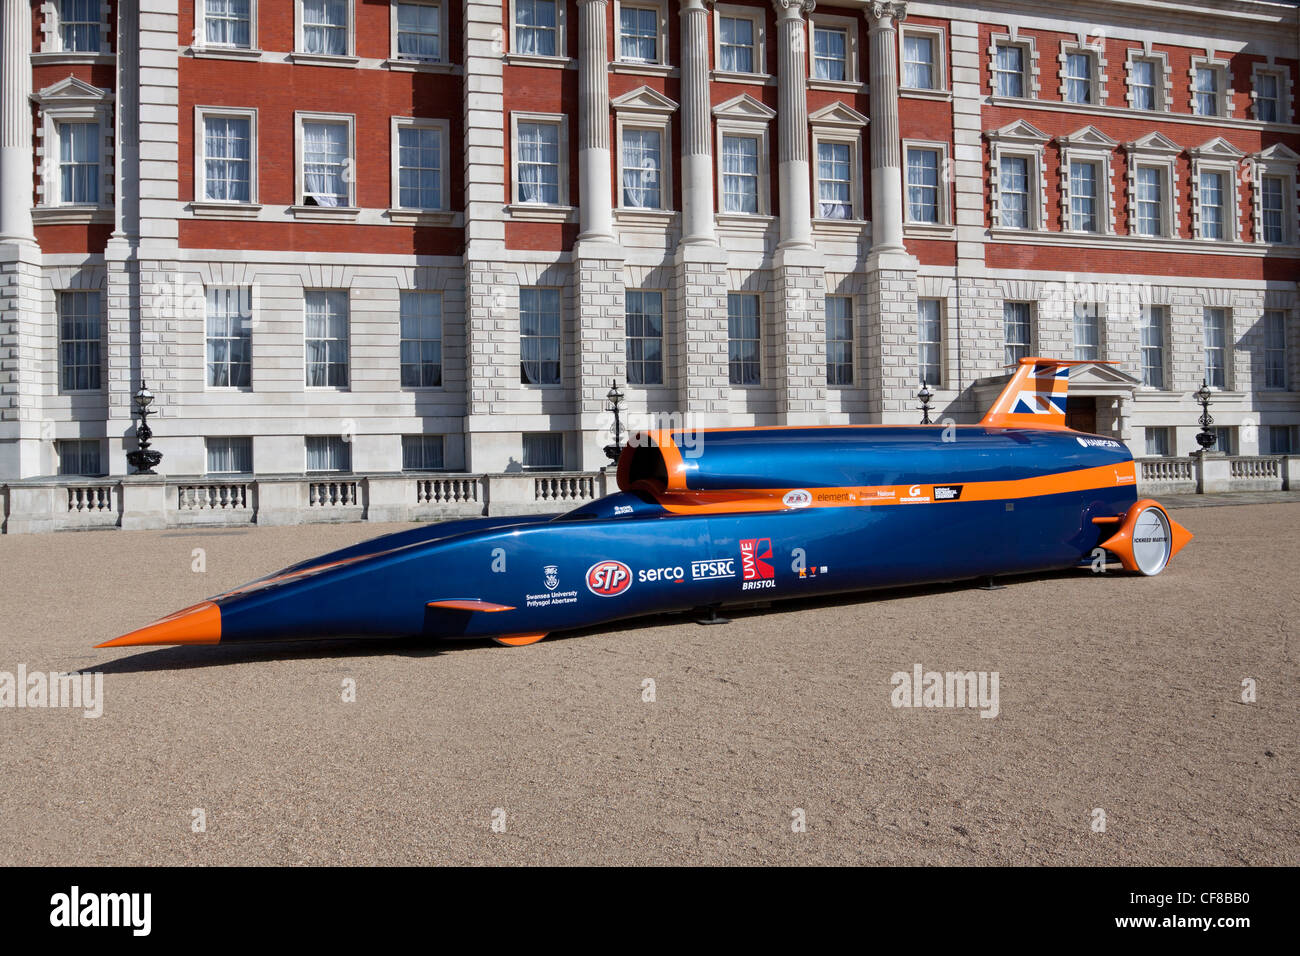 Bloodhound SSC supersonic car, London, England, UK - Stock Image